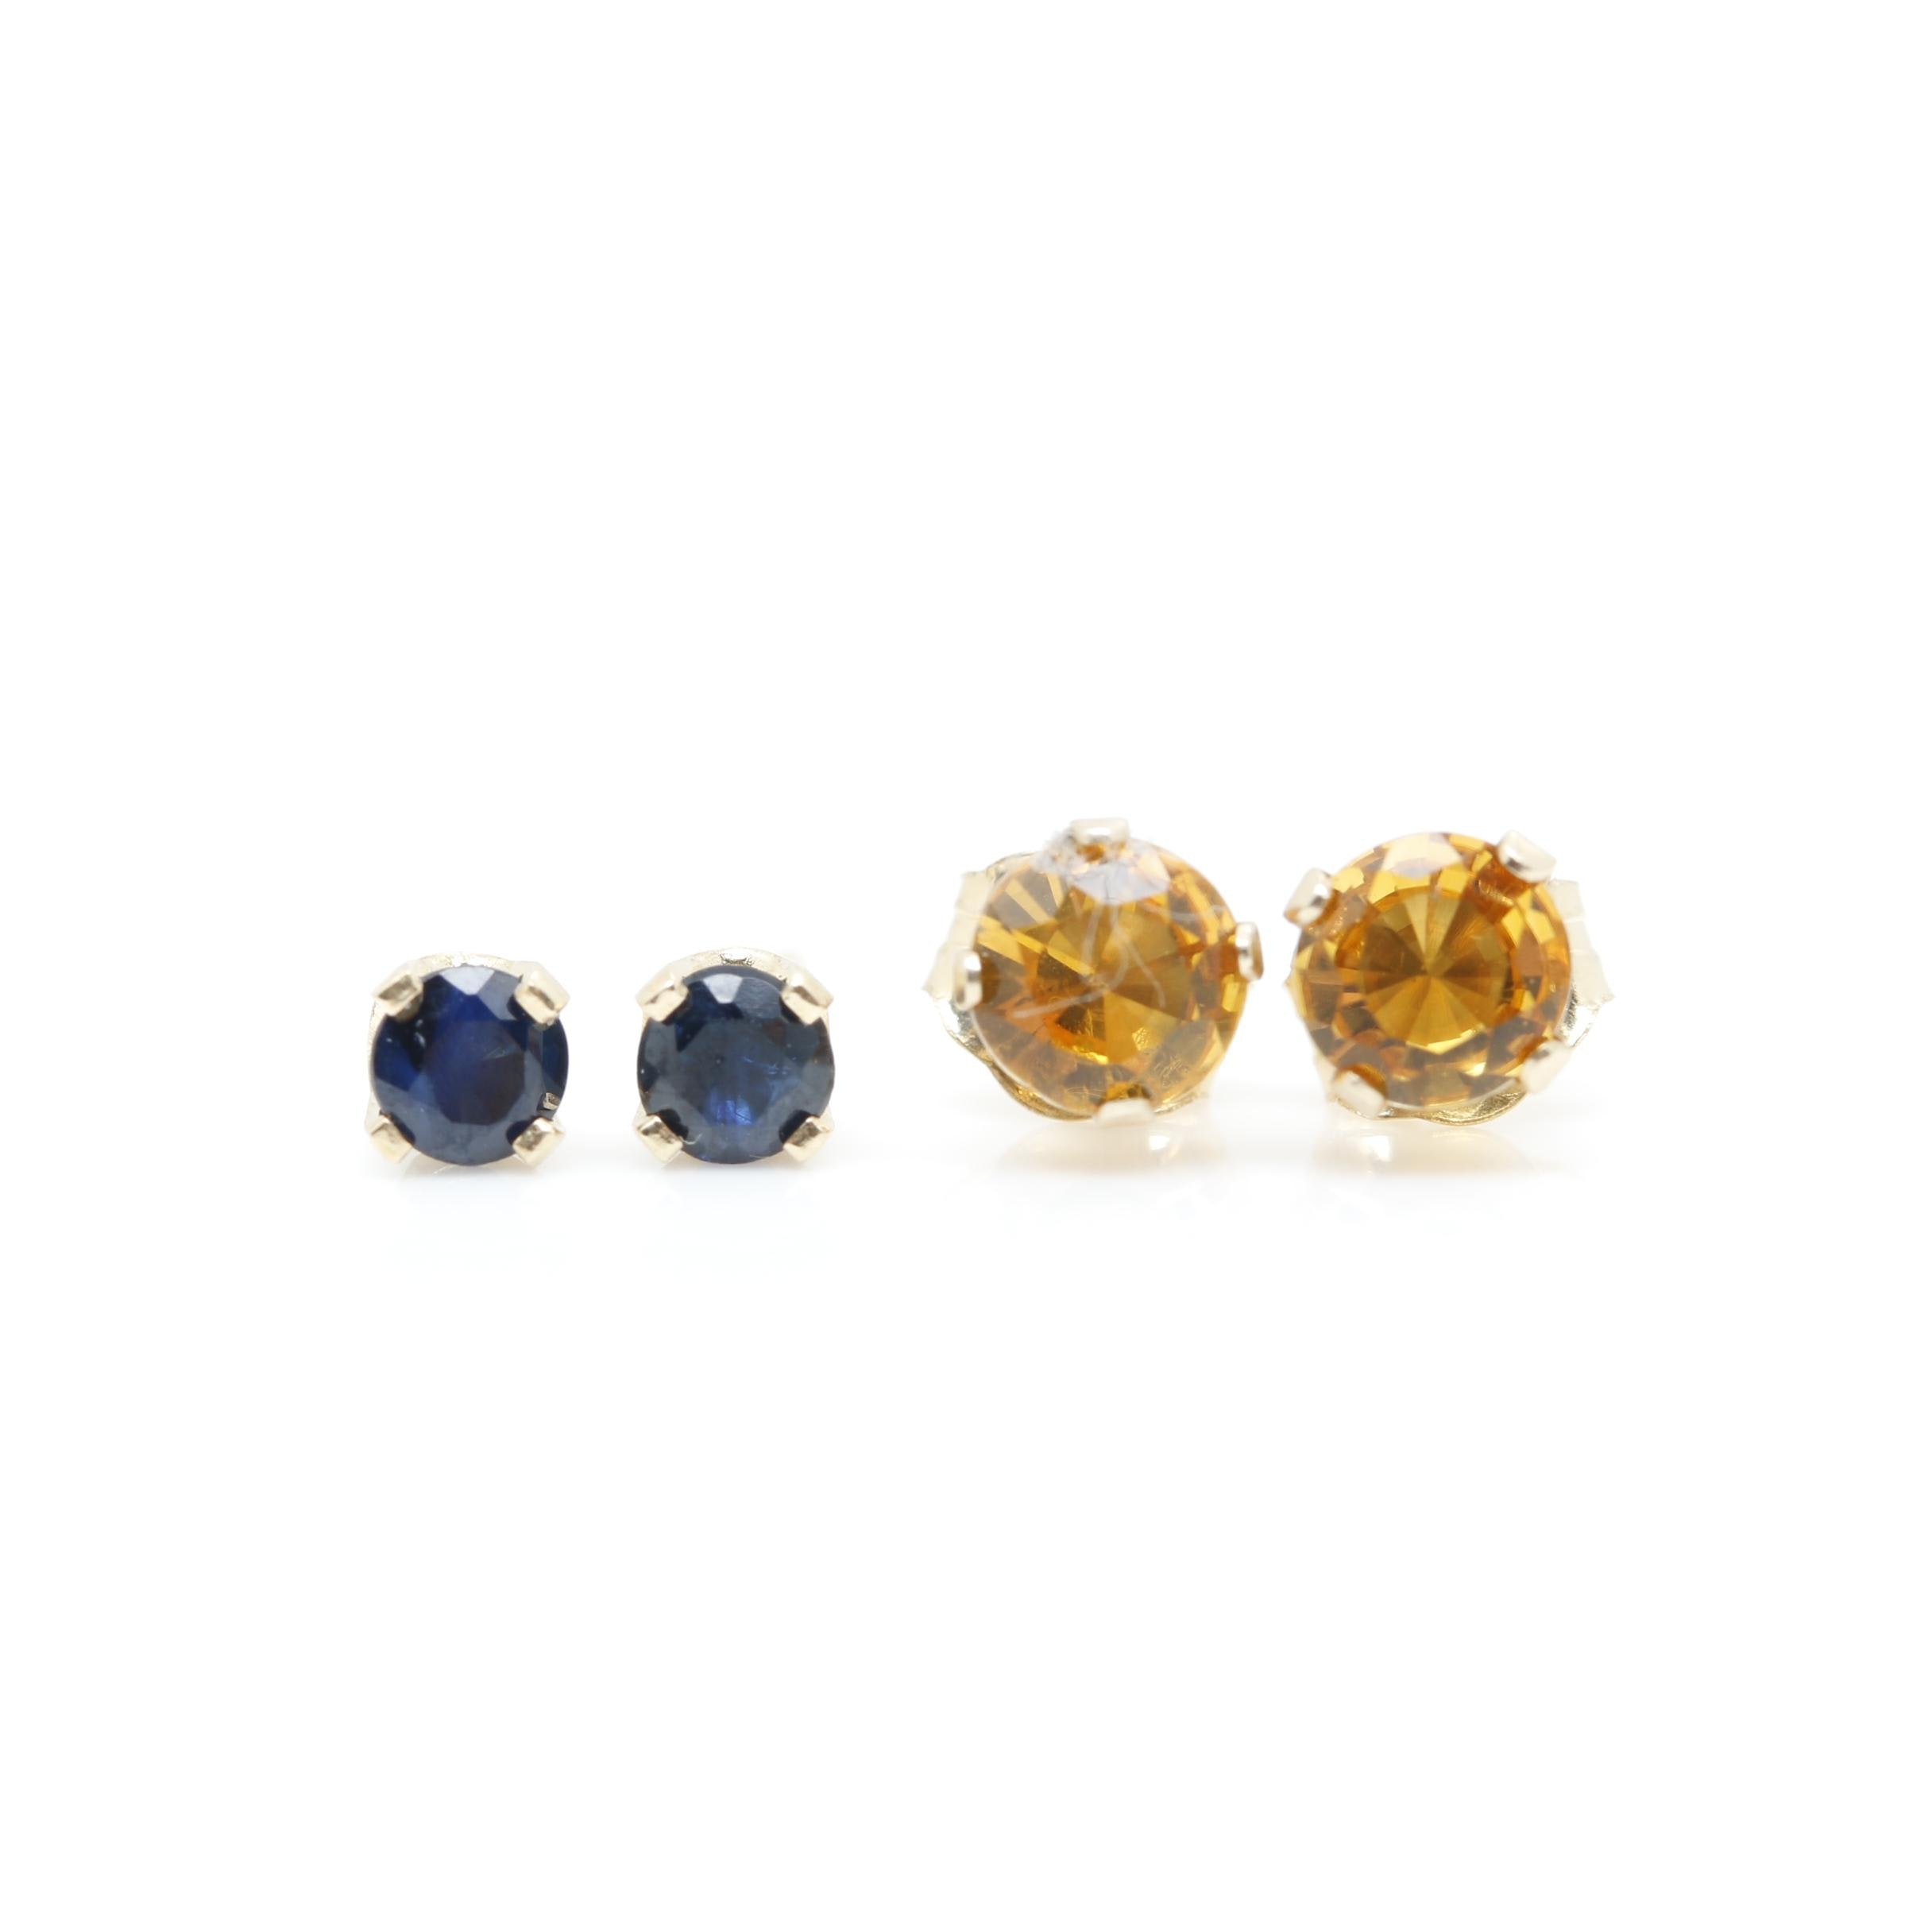 14K Yellow Gold Sapphire and Citrine Stud Earrings